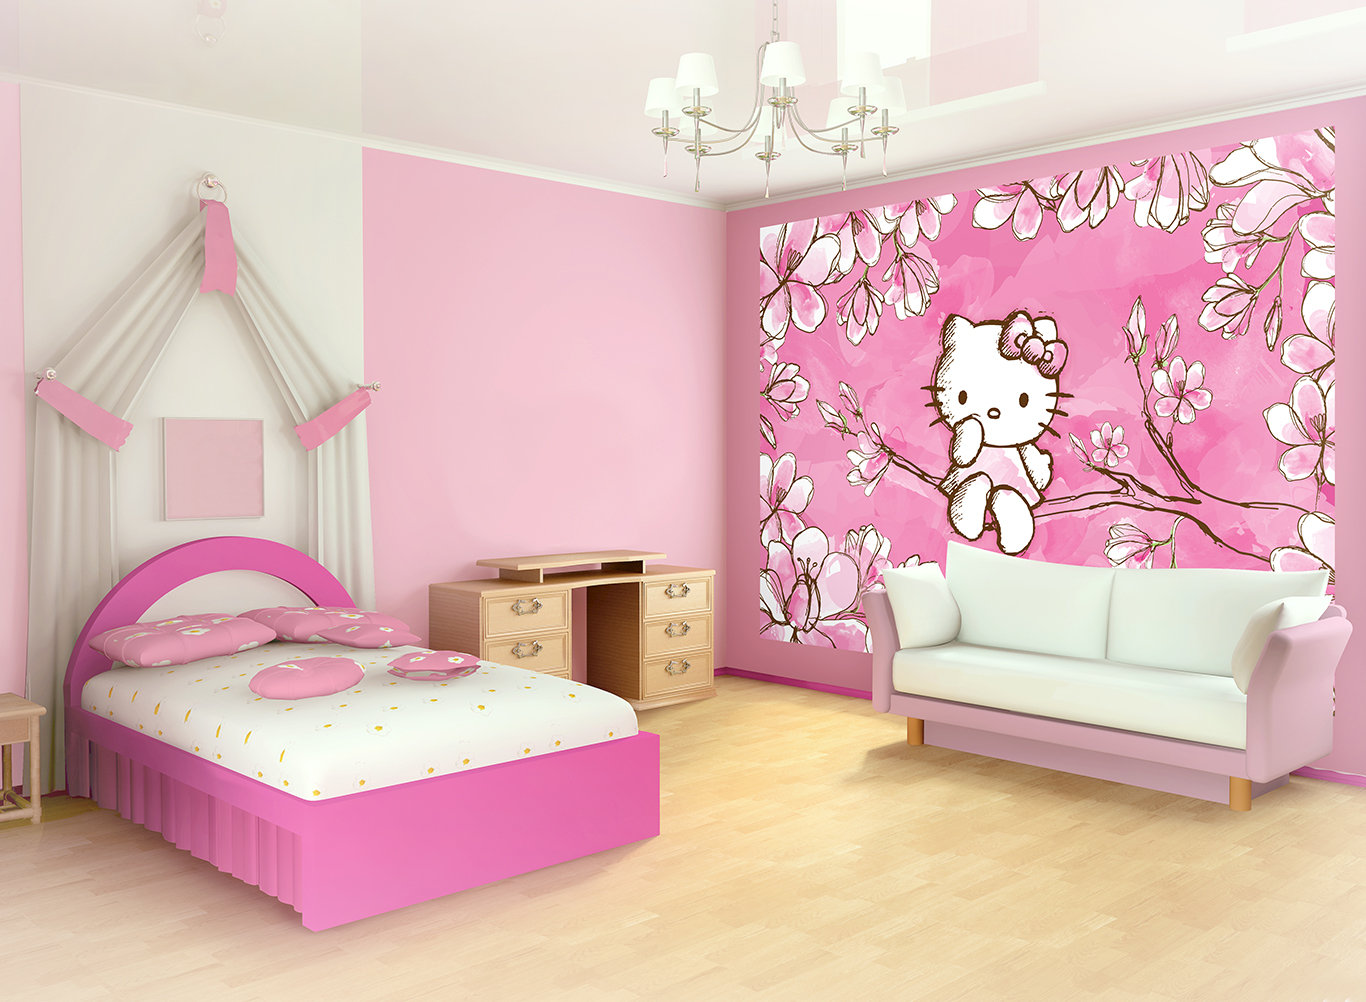 Décoration chambre fille hello kitty